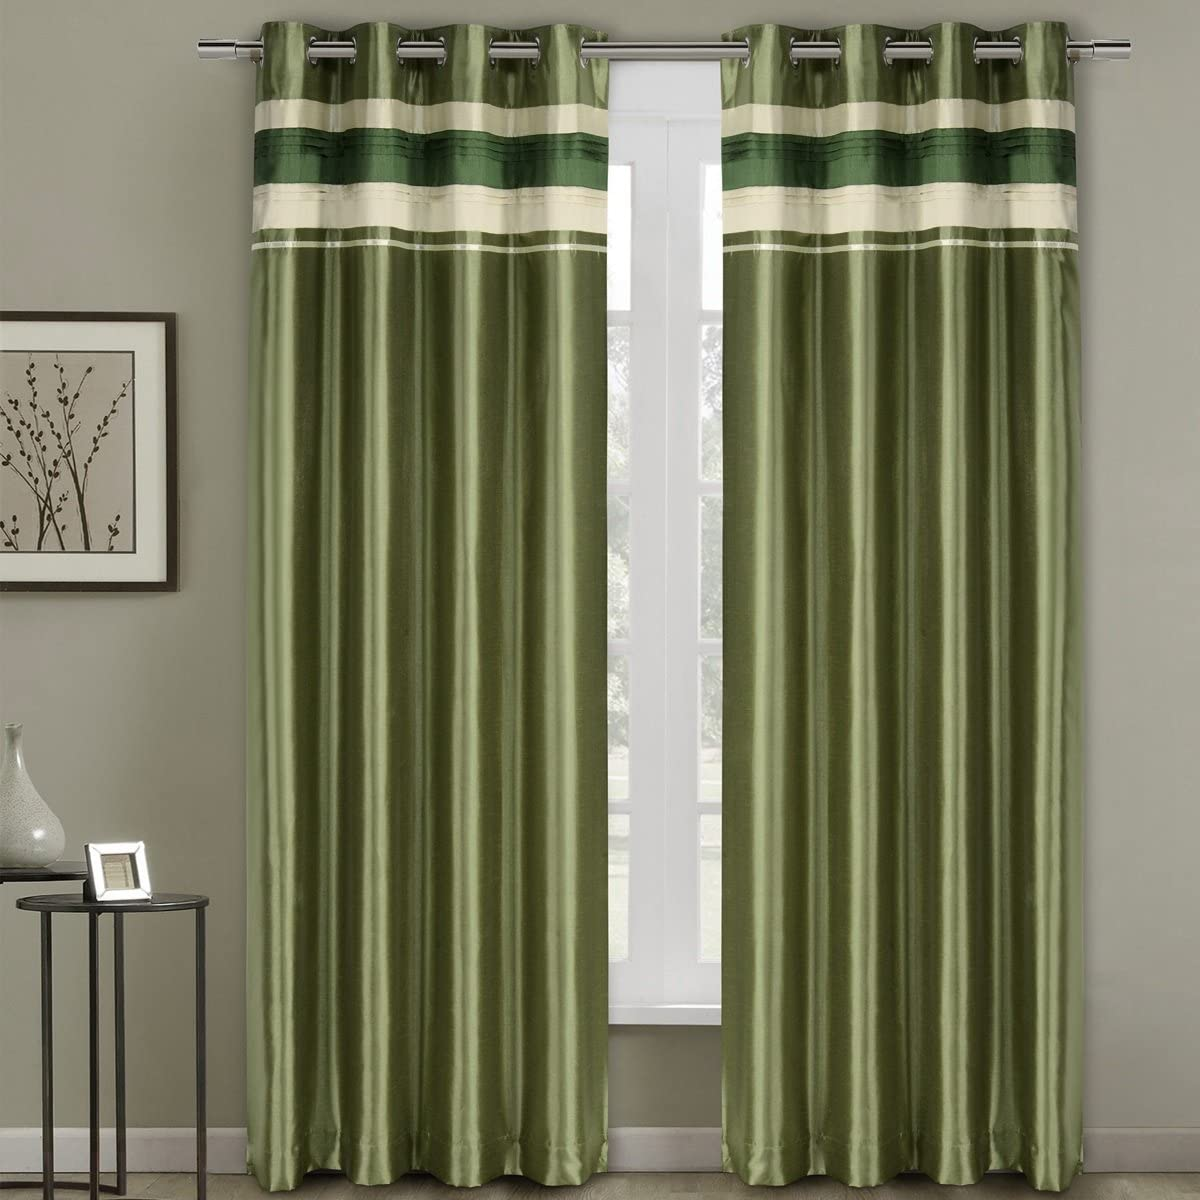 Royal Hotel Milan Sage Top Grommets Blackout Multiple Layers Fabric, Window Curtain Panels, 54×108 inches Single Panel